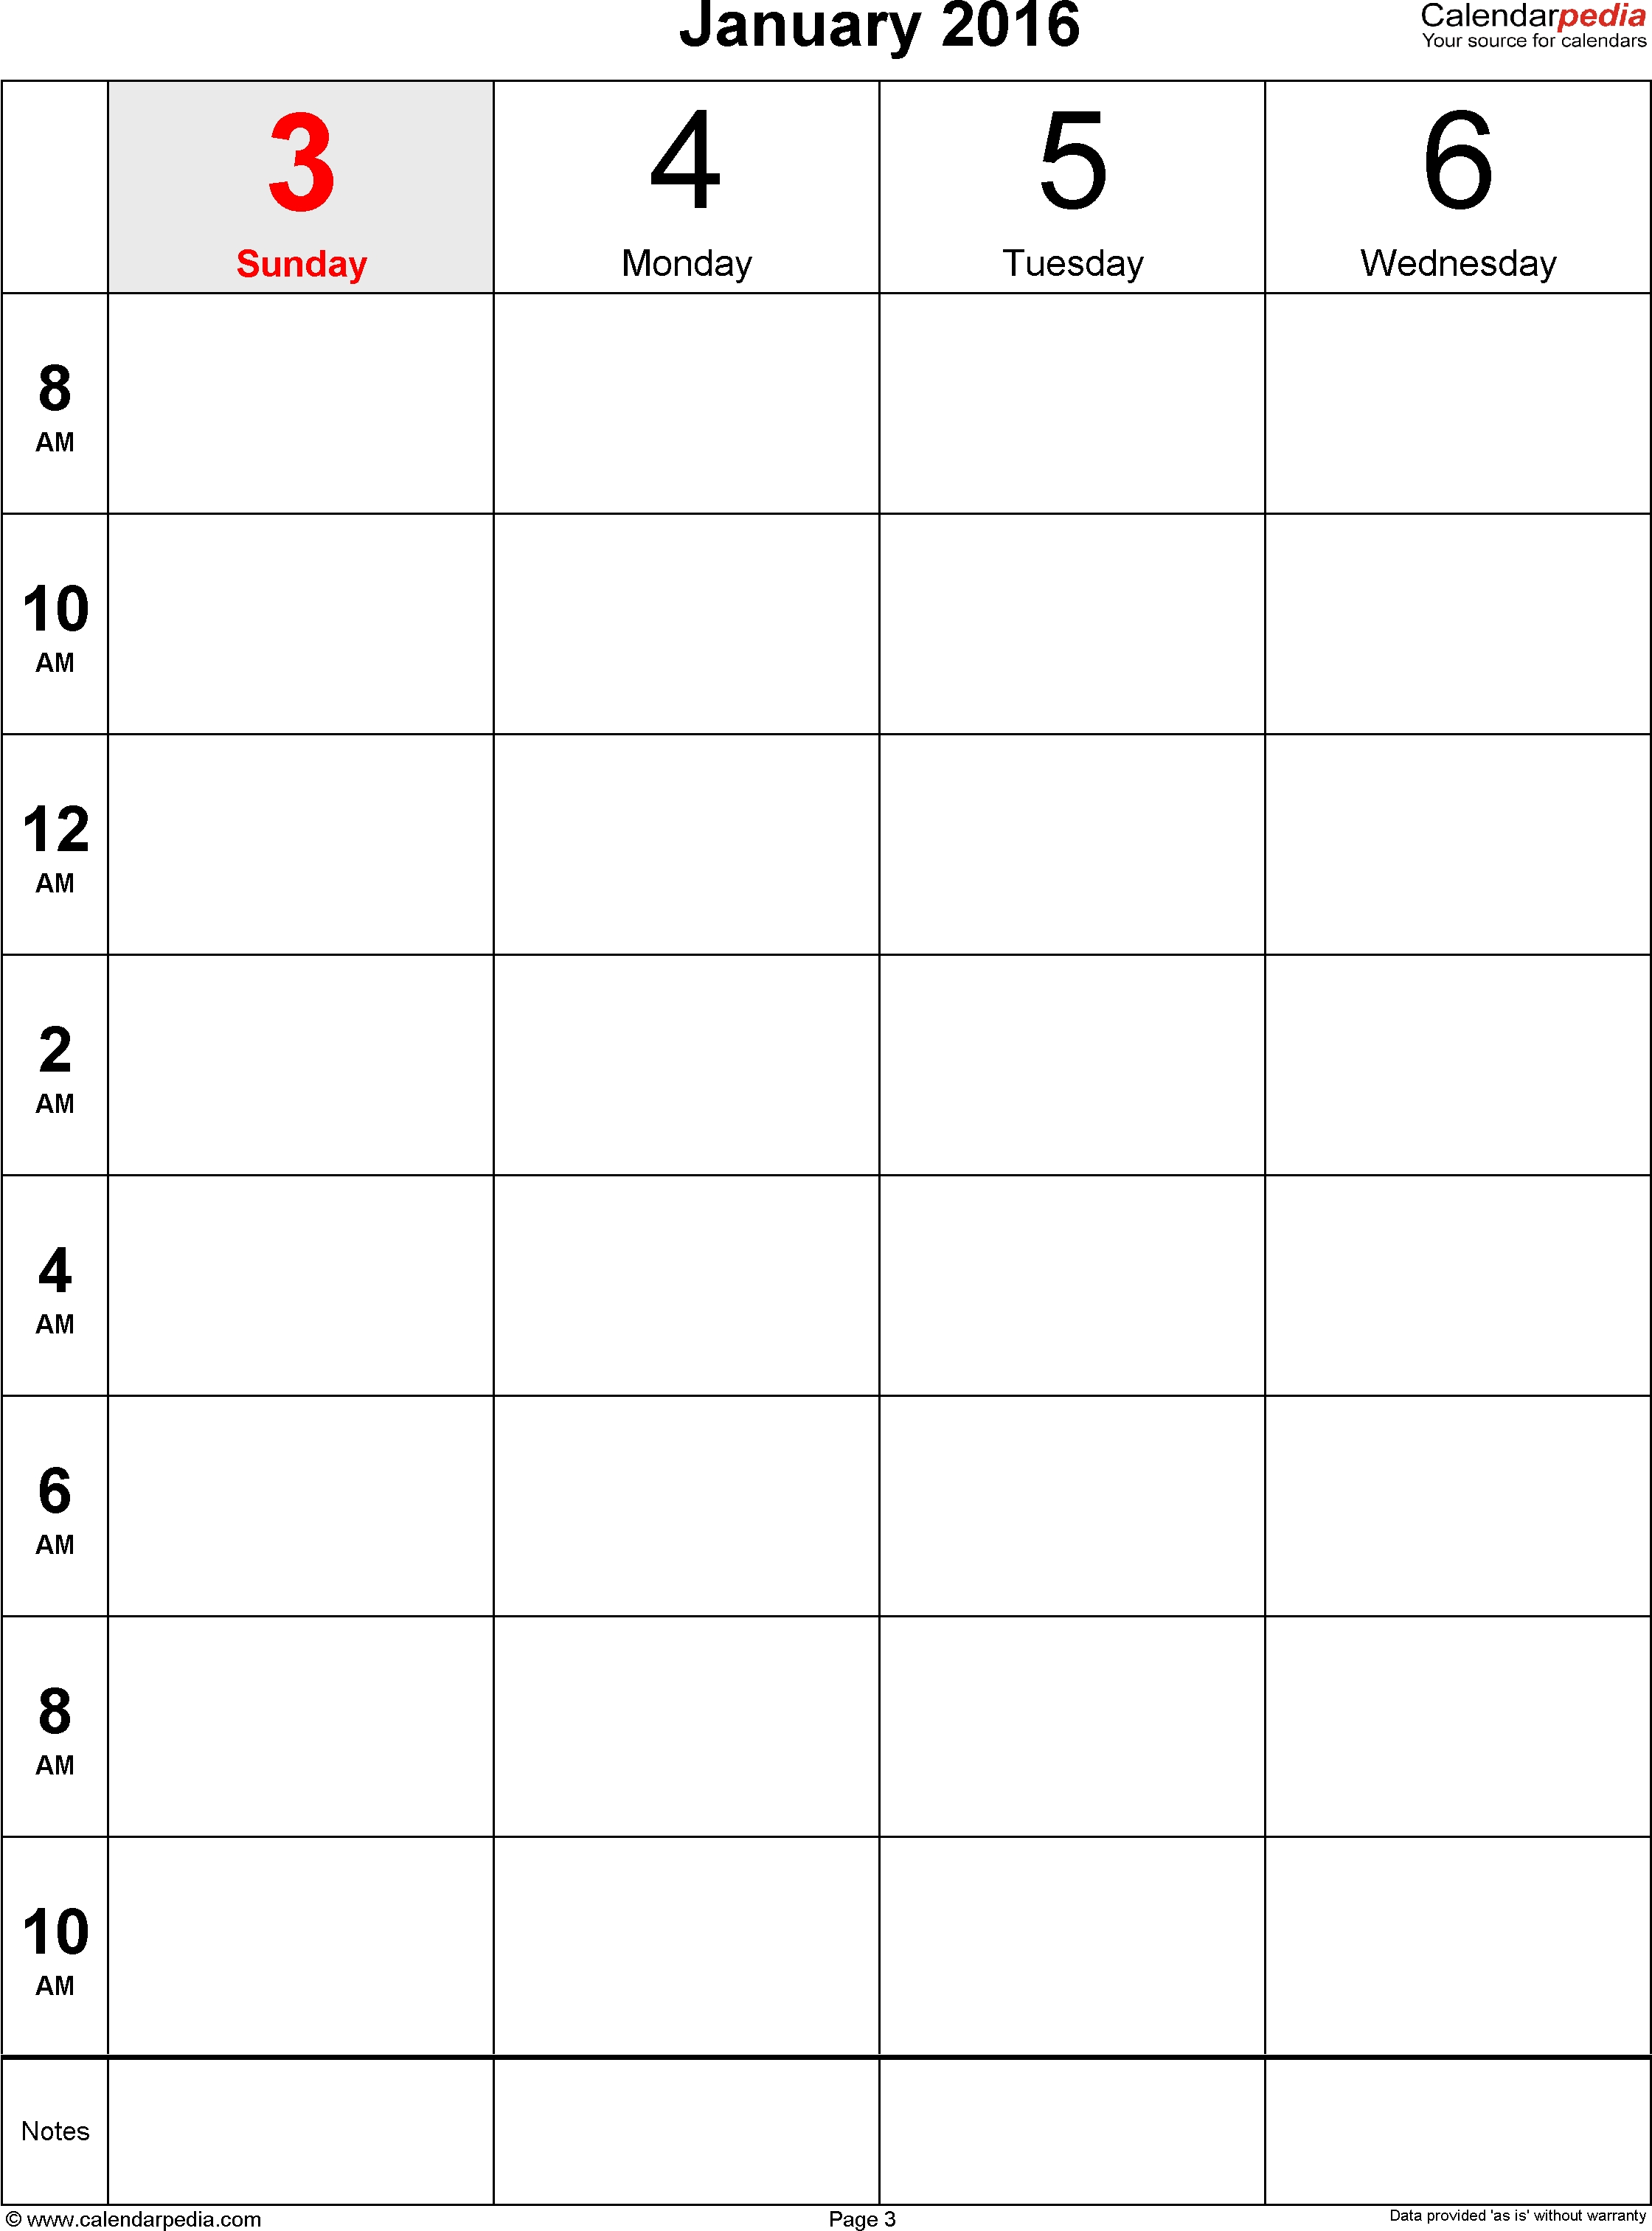 Weekly Calendars 2016 For Word - 12 Free Printable Templates